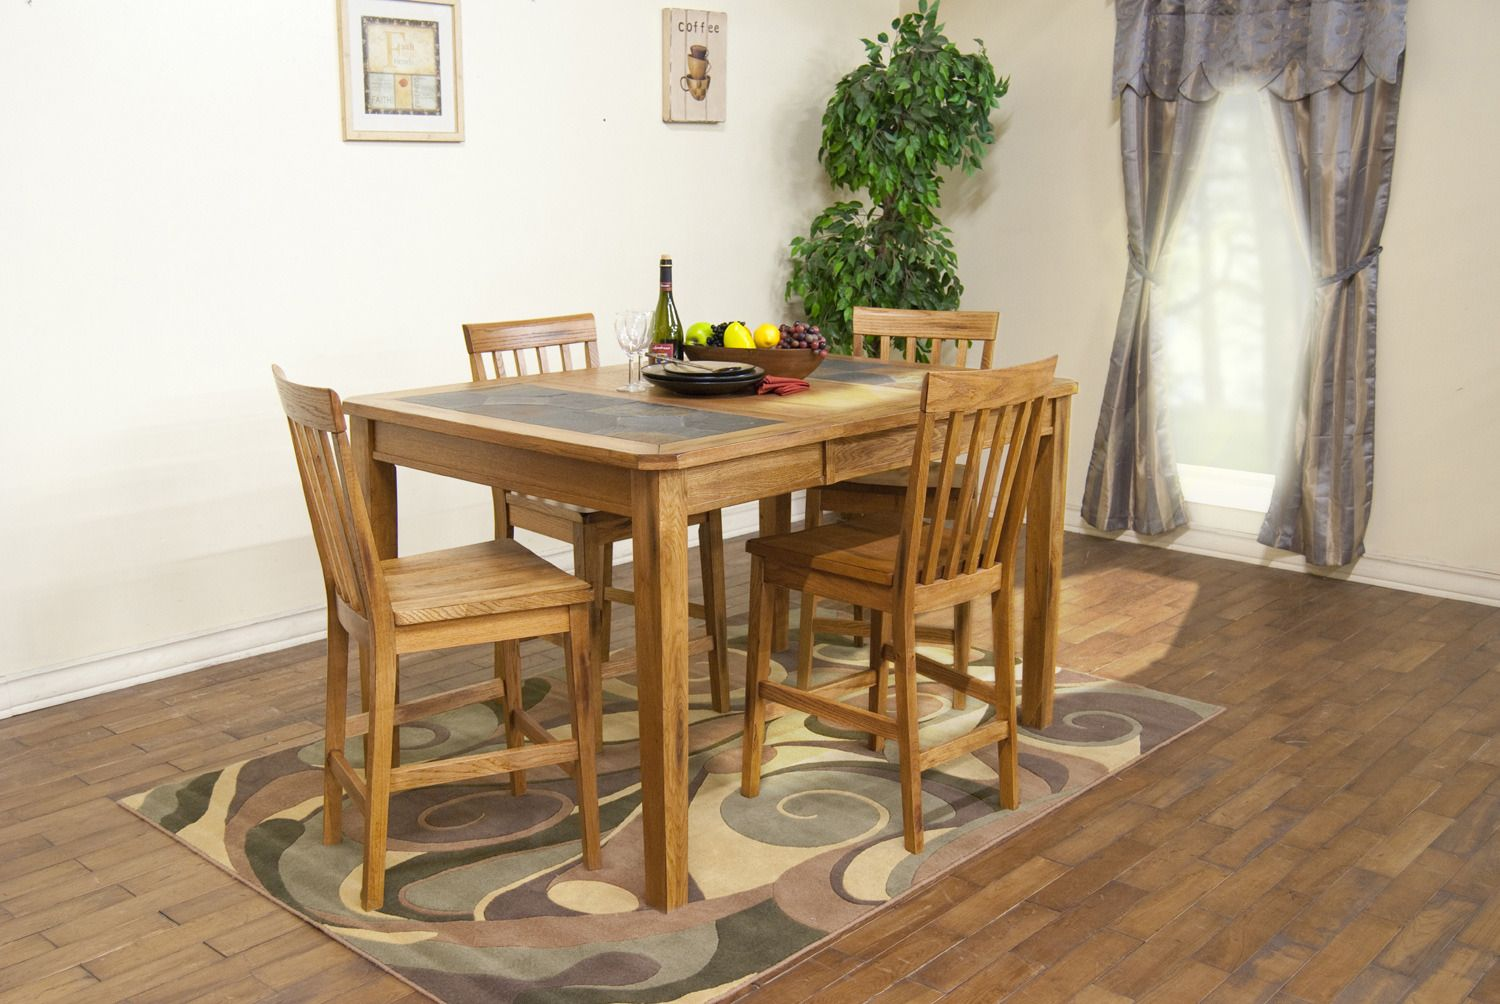 Sedona Extension Table w/ Slate Top Dining Room Set | Sunny Designs ...